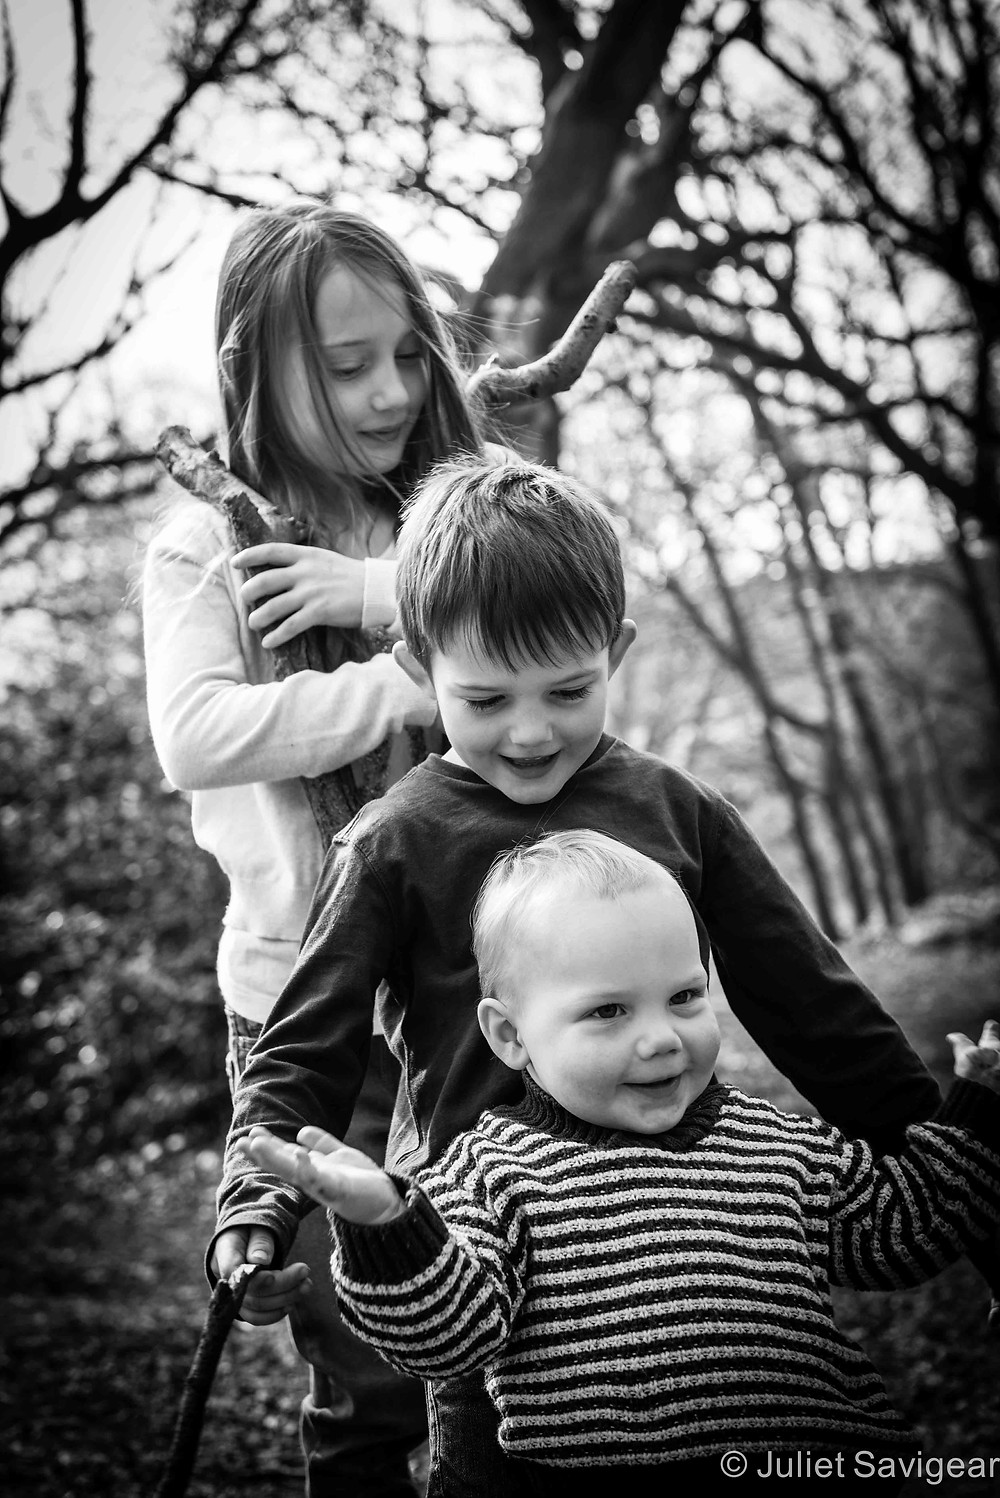 Children's Photography In The Woods - Tooting Common